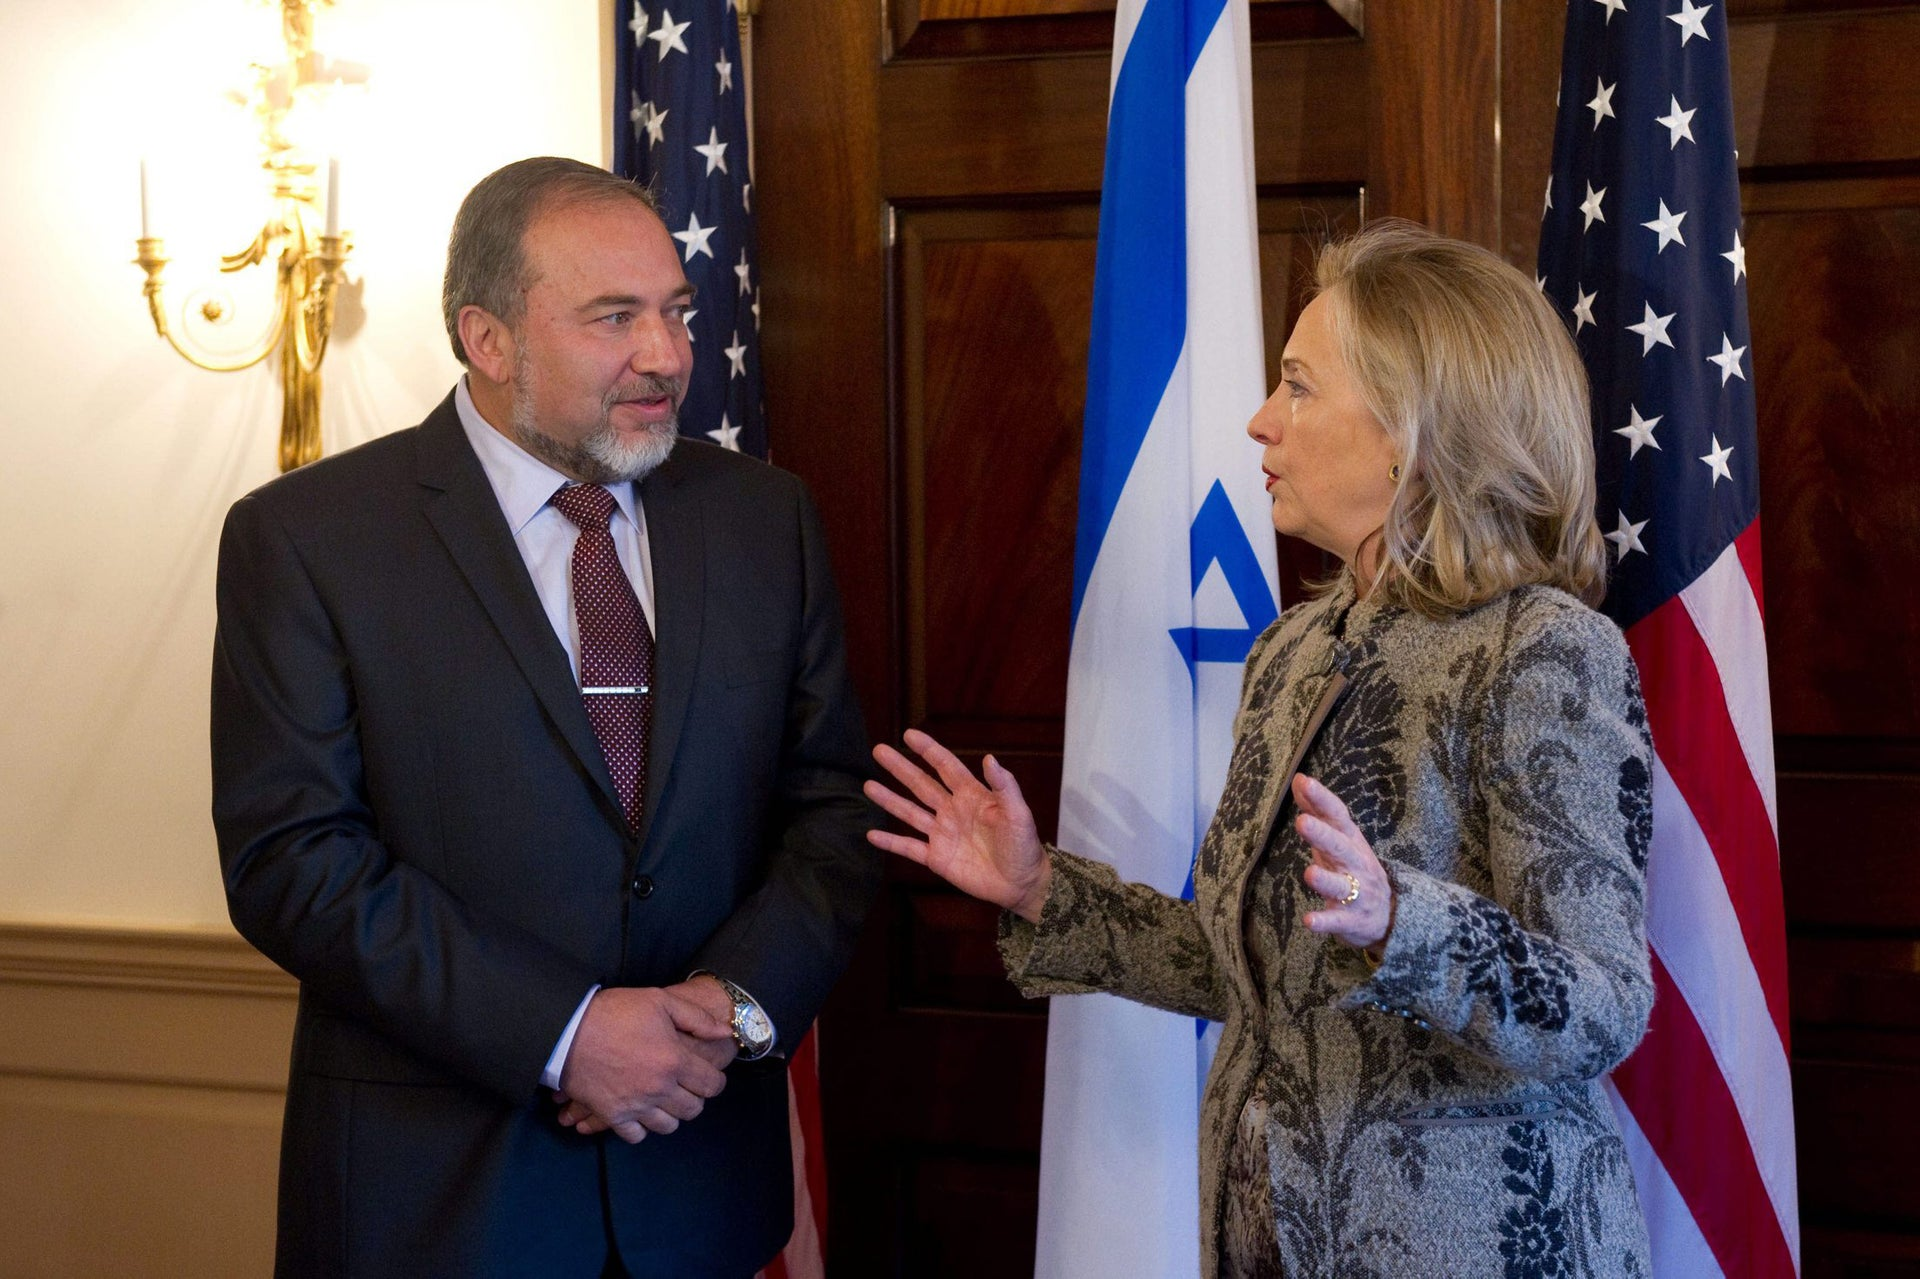 Hillary Clinton, then U.S. secretary of state, talks with Avigdor Lieberman, Israel's foreign minister at the time, in Washington, on Feb 7, 2012.